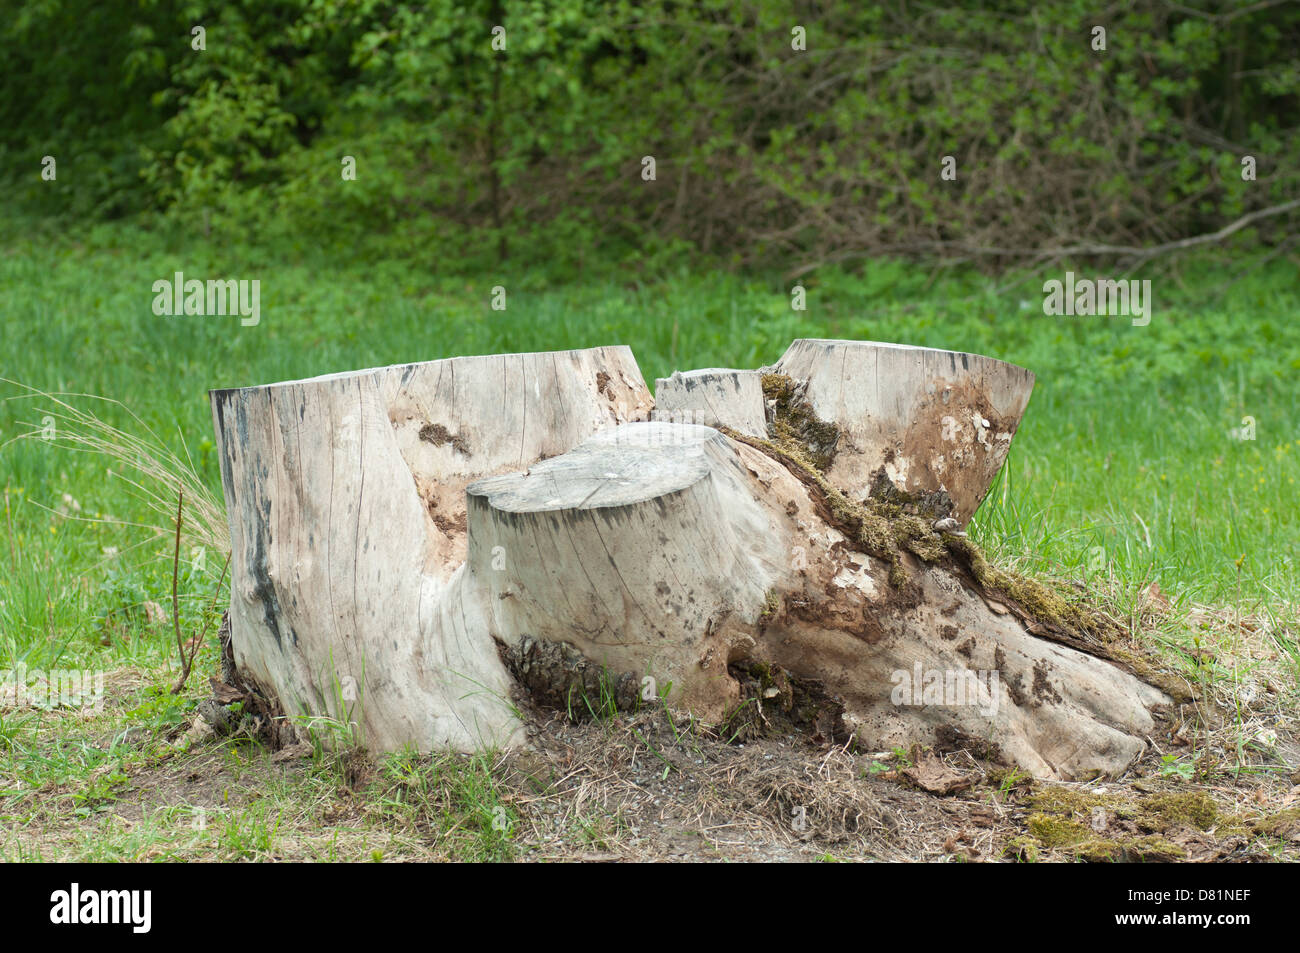 A tree stub in the park - Stock Image